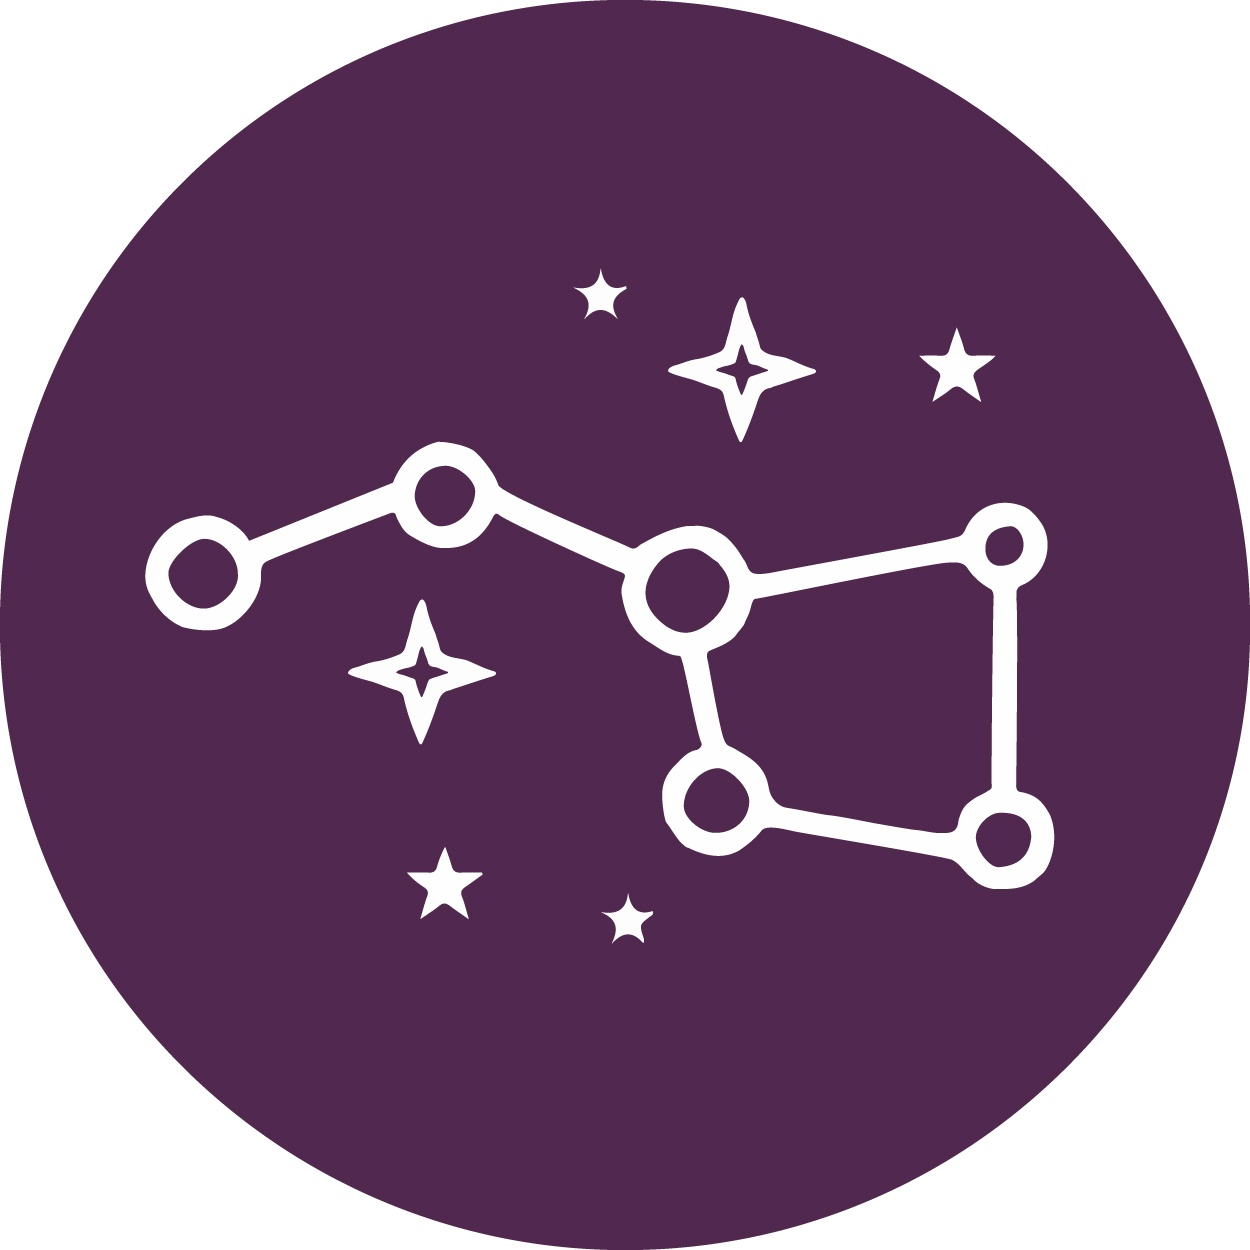 Pleidian-Icon-Purple-Circle.jpg